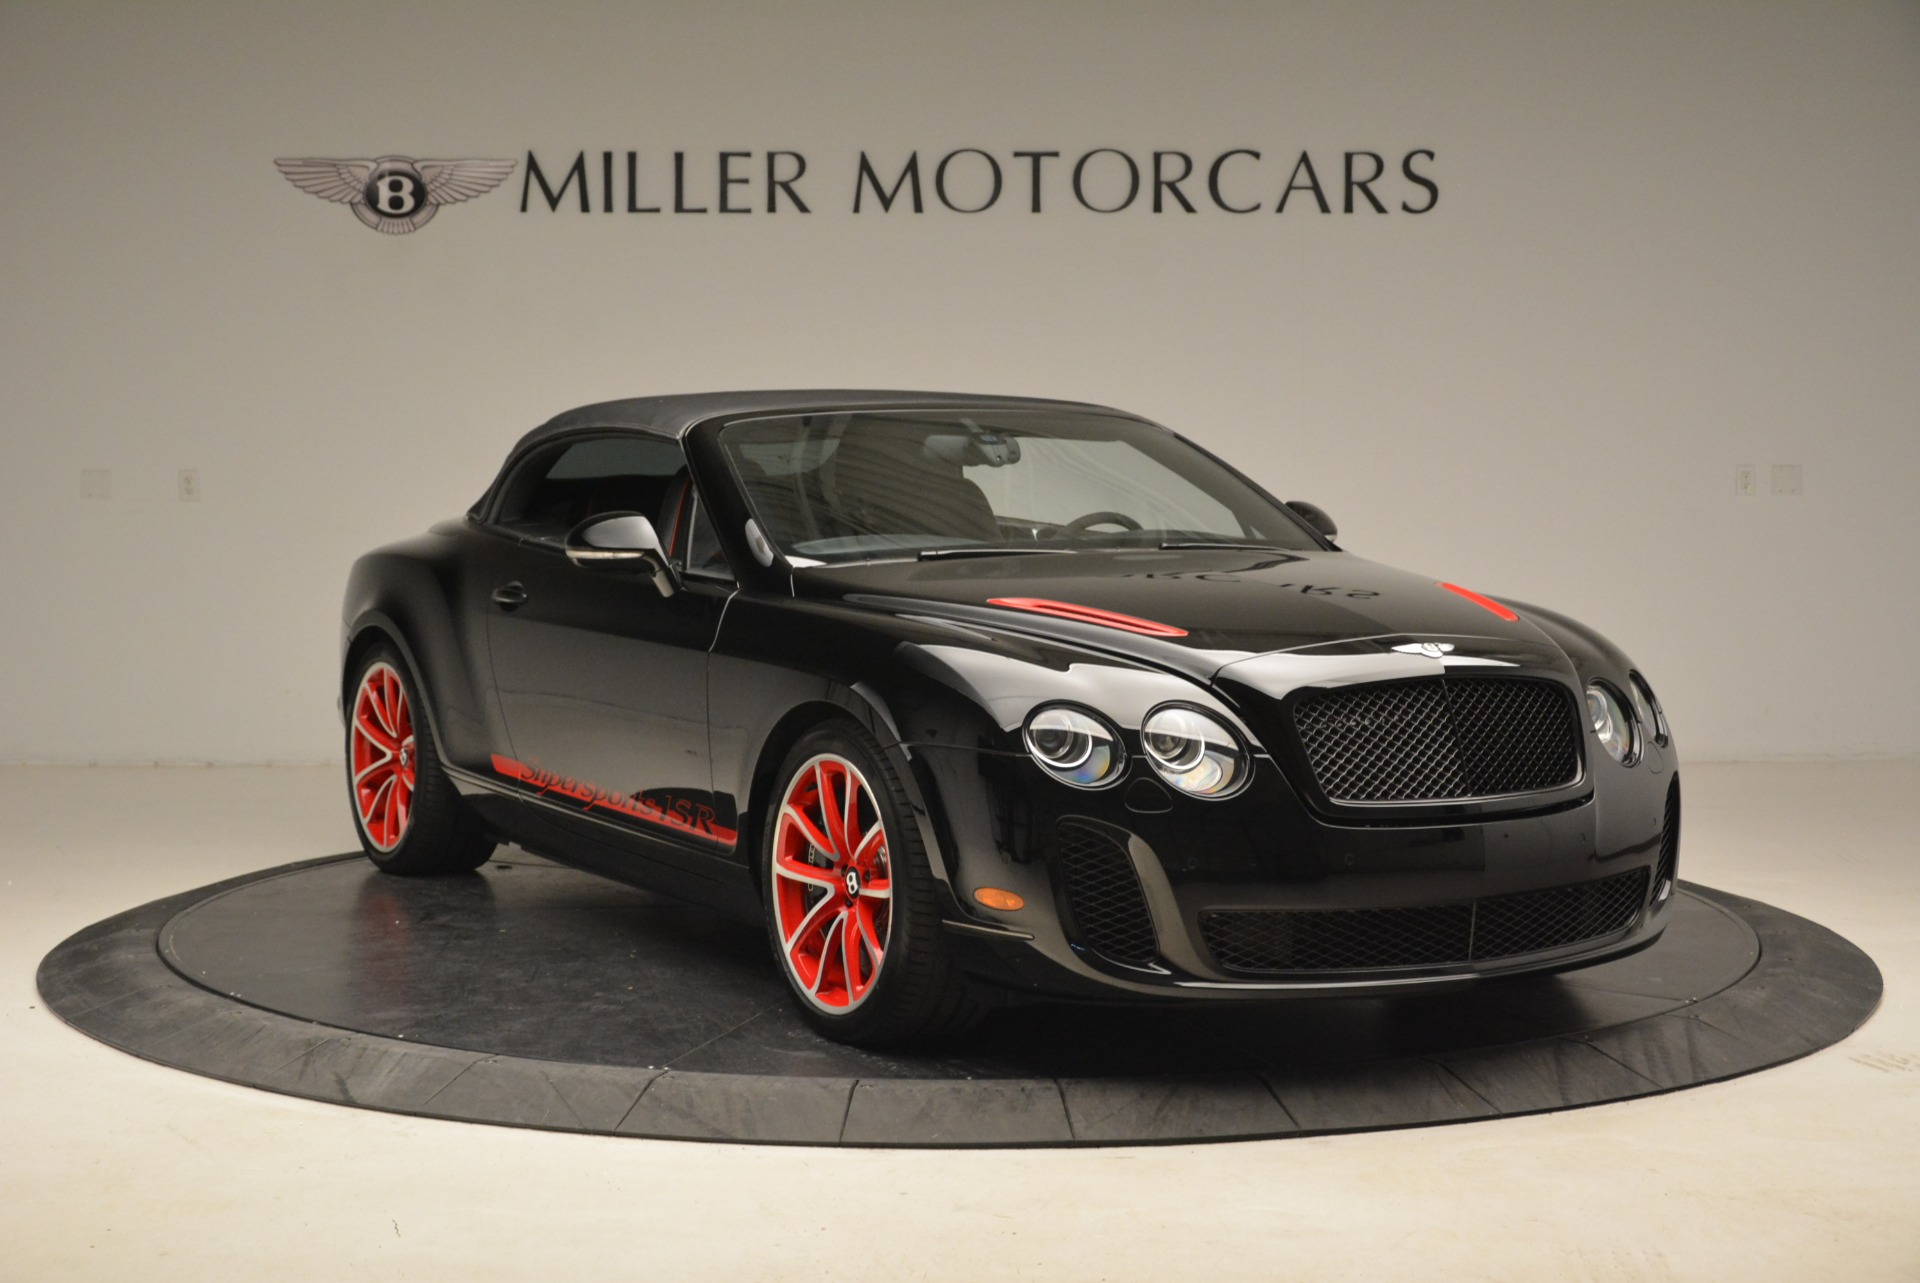 Used 2013 Bentley Continental GT Supersports Convertible ISR For Sale In Greenwich, CT 2151_p24